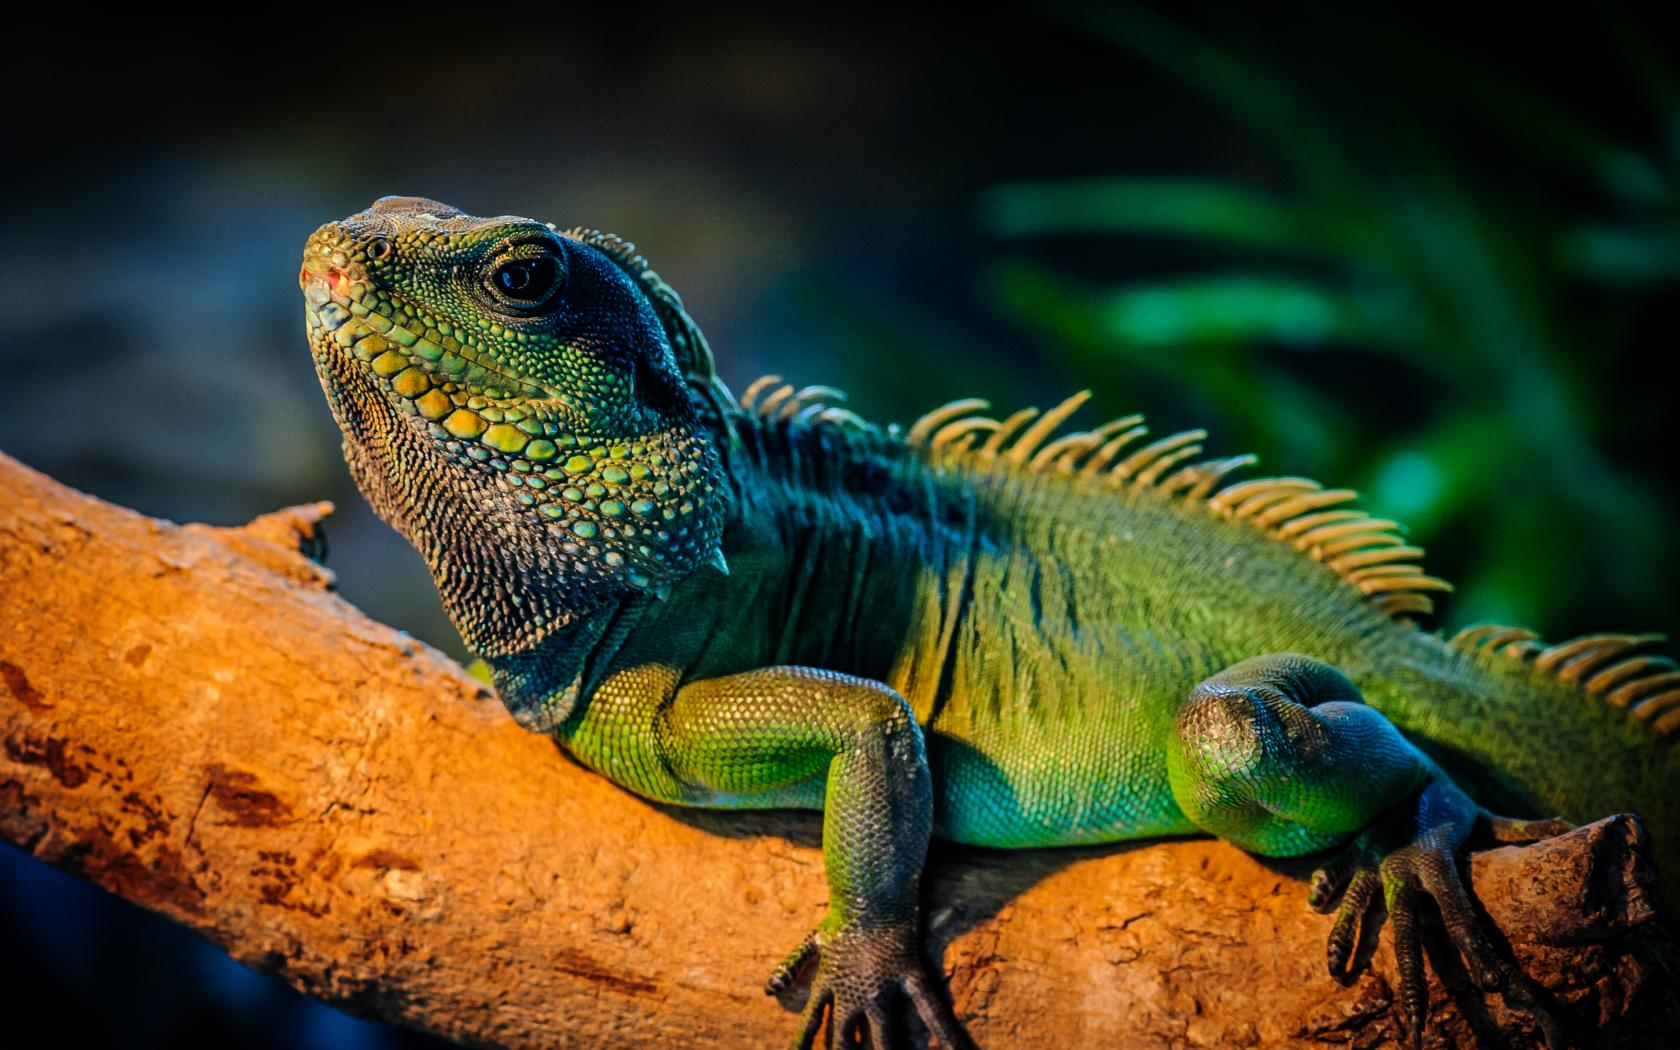 Free Lizard Wallpapers | Free Lizard Full HD Quality Wallpapers